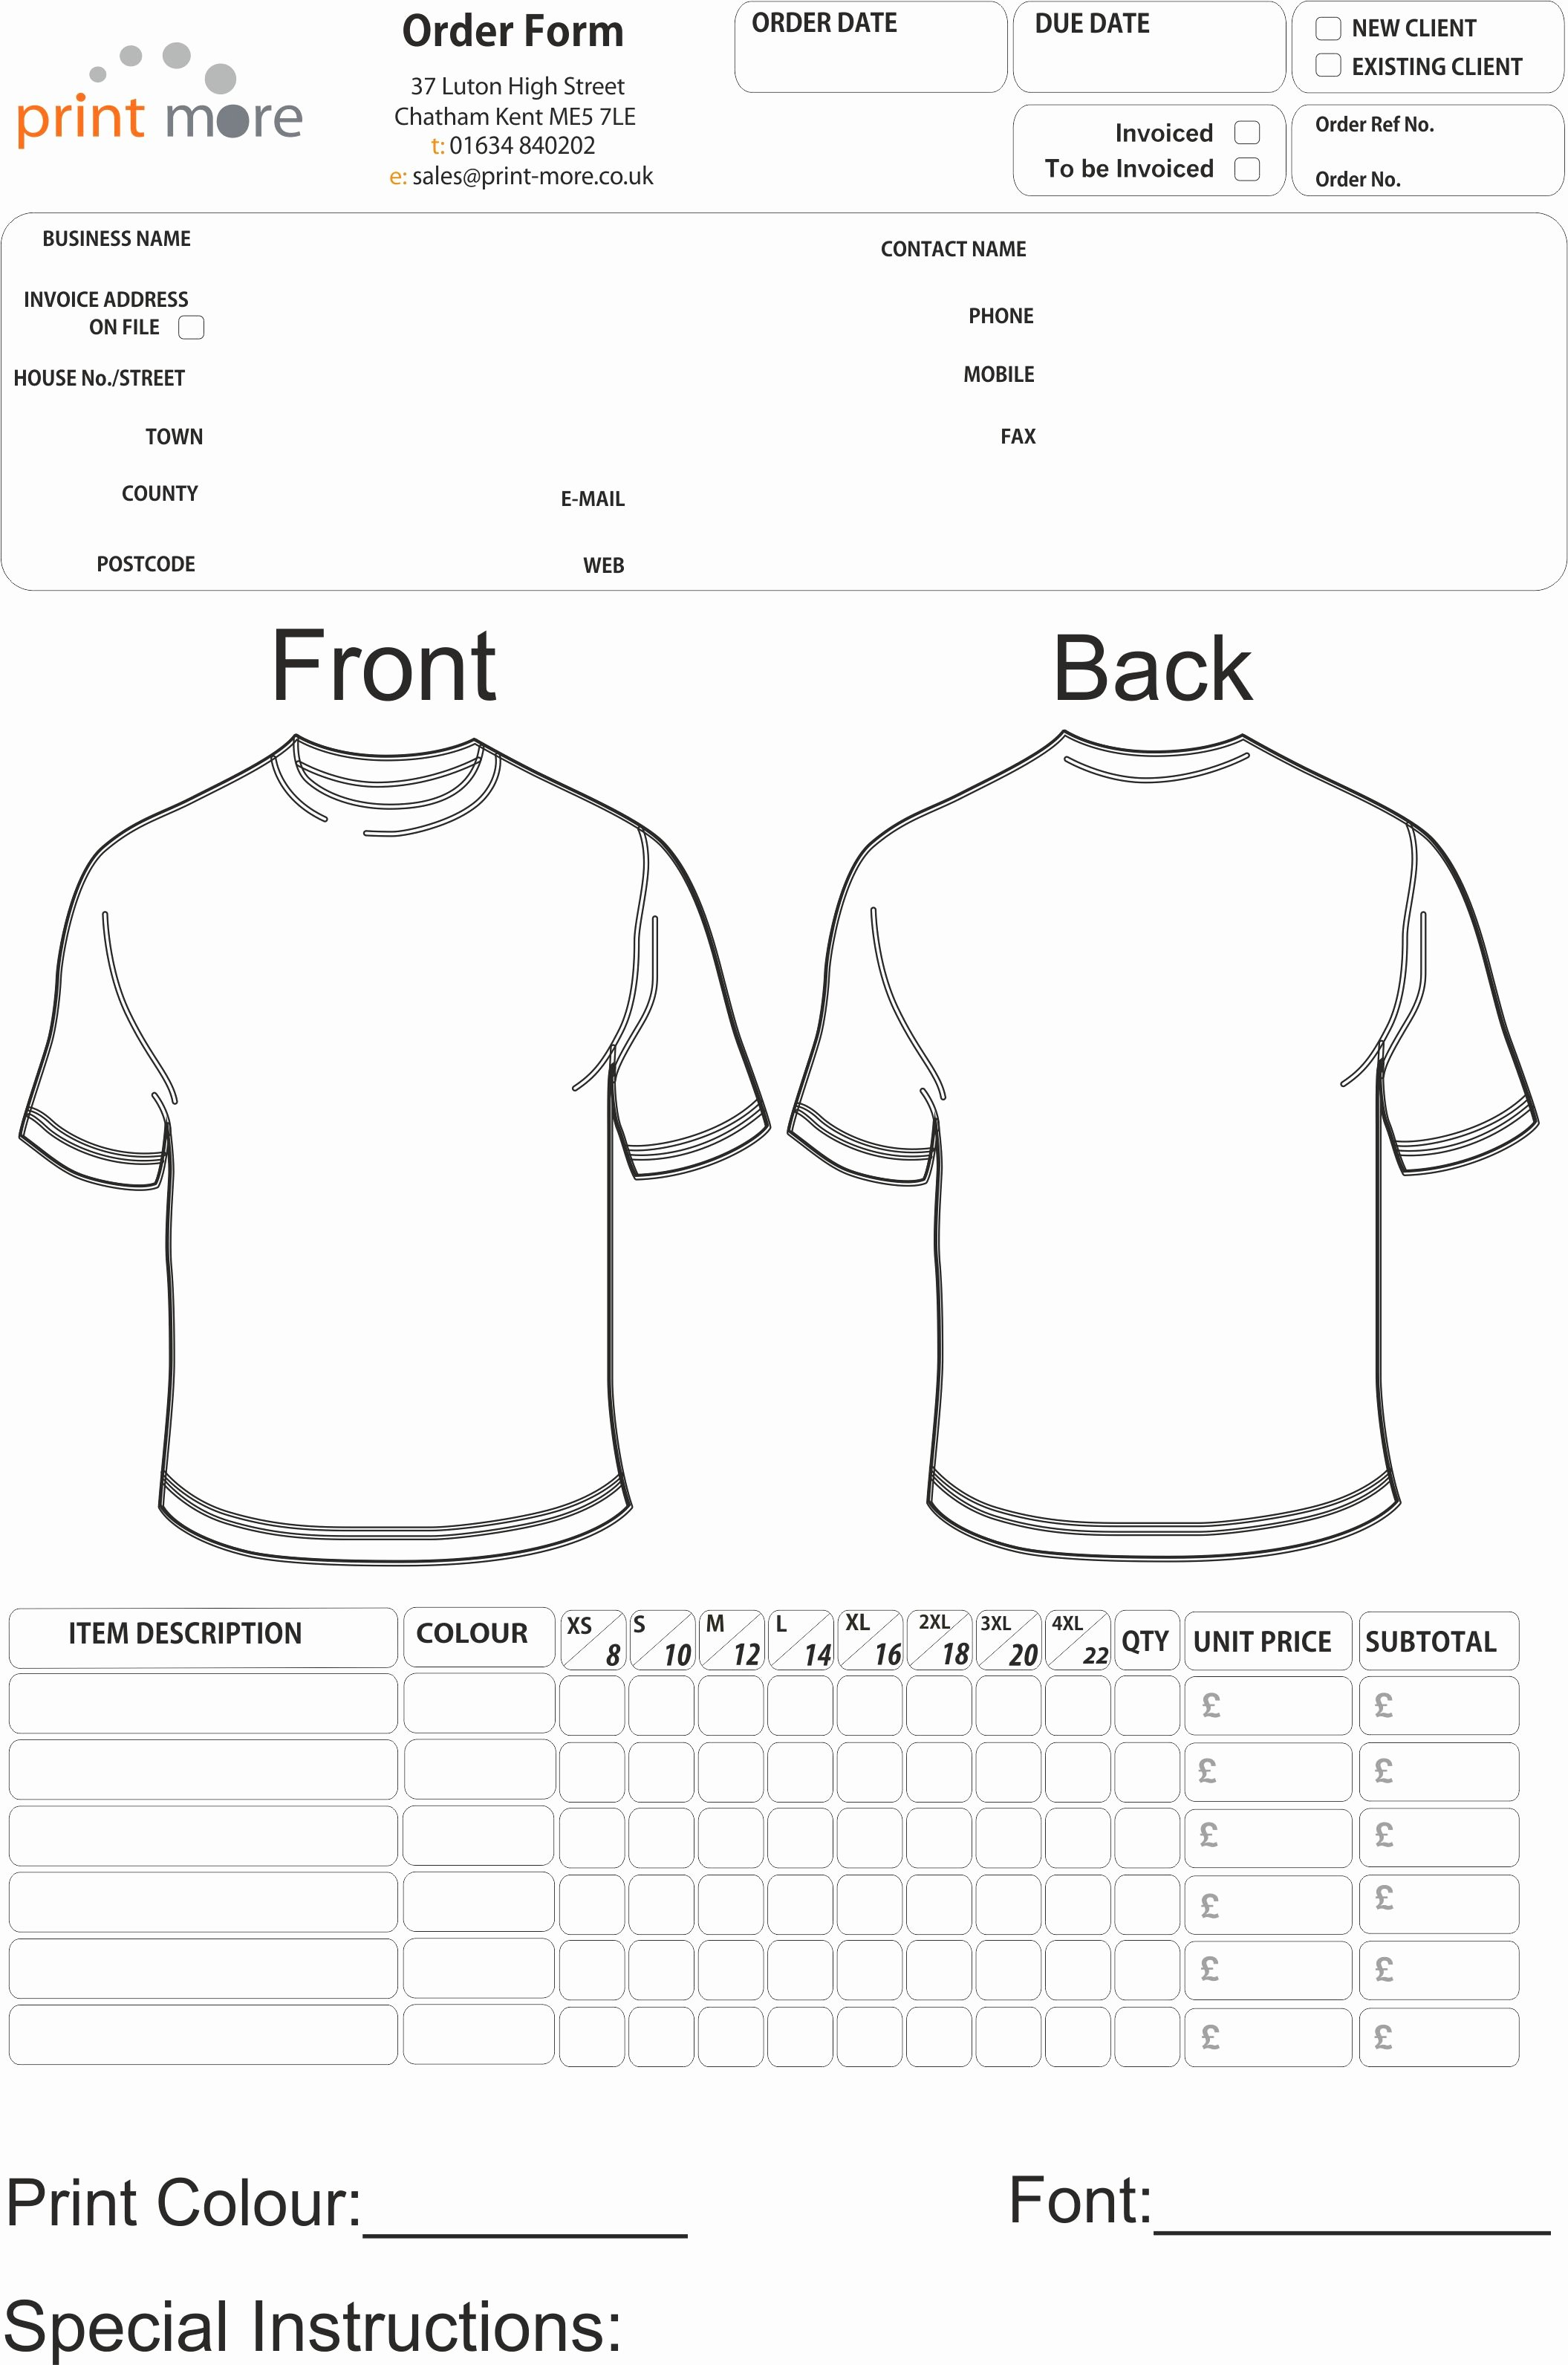 Tshirt order form Template Unique T Shirt order form Template